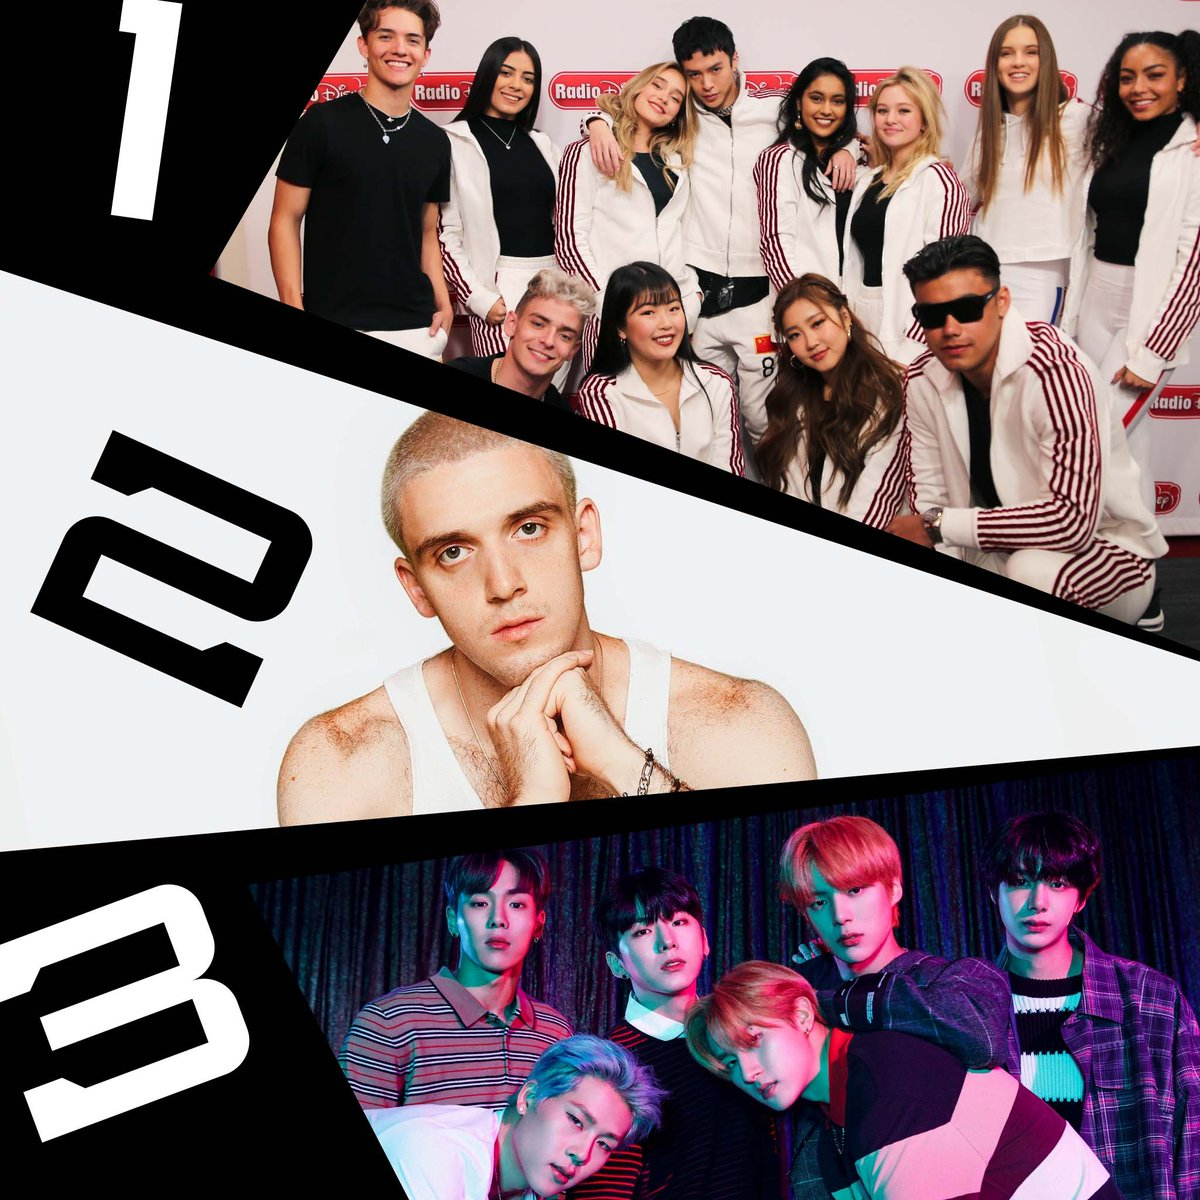 Start your week off right with Monday's #RDTop3!  1. @NowUnitedMusic - #ComeTogether 2. @lauvsongs - #ModernLoneliness 3.@OfficialMonstaX - #YouCantHoldMyHeart<br>http://pic.twitter.com/oRbiX6sr5m